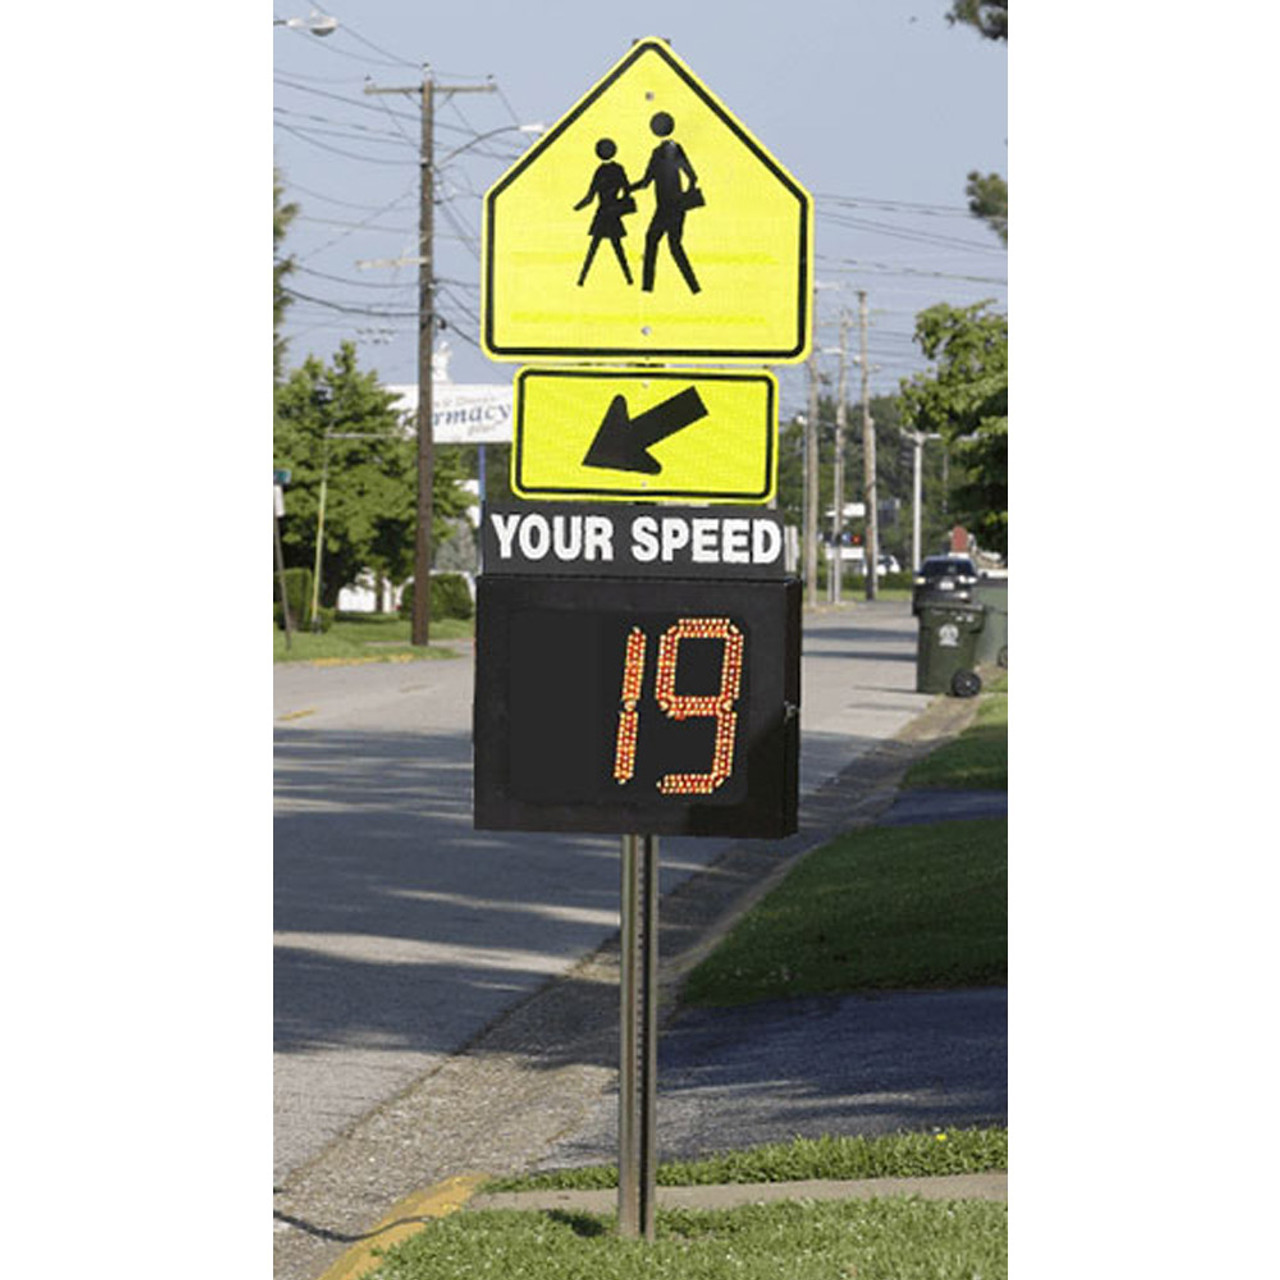 MPH Speed Guardian Radar Speed Display Sign Package, Pole Mount, Pole Not Included, 2-Digit Amber Display with Overspeed Notifications, choose 110 Volt AC, Internal Battery, or Solar Powered